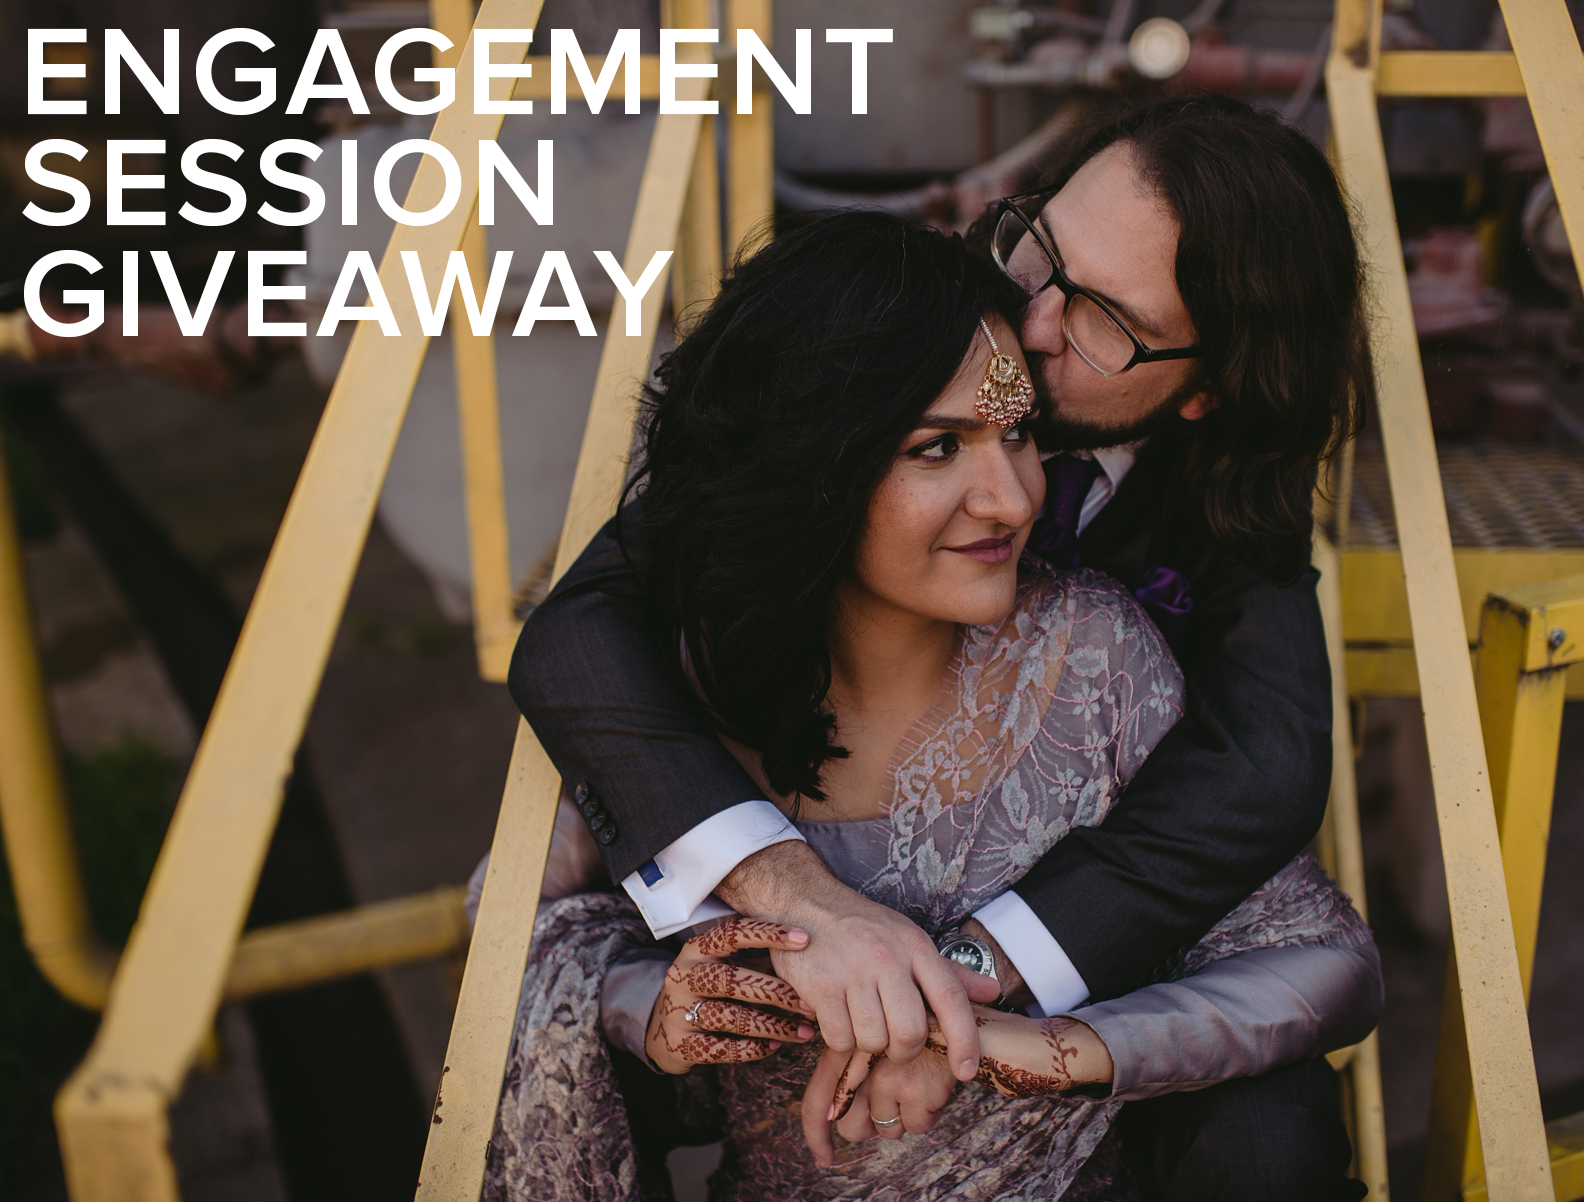 Everyone loves free stuff, right? - Well, here's your chance to get a FREE engagement session. Why? Because owning your own business means doing whatever you want to do, and what we want to do is meet rad couples and make G O R G E O U S photos of them being natural and happy together.RULES1. You must be engaged, aka planning to be married. Ring(s) not required, but you gotta be serious about getting hitched in 2019 or 2020 (i.e. have a date or almost have a date picked out)2. You must be available to shoot this summer in either NYC, Seattle, DC, or Richmond areas.3. You must enter by June 13, 2019 @ 11:59 PM ET